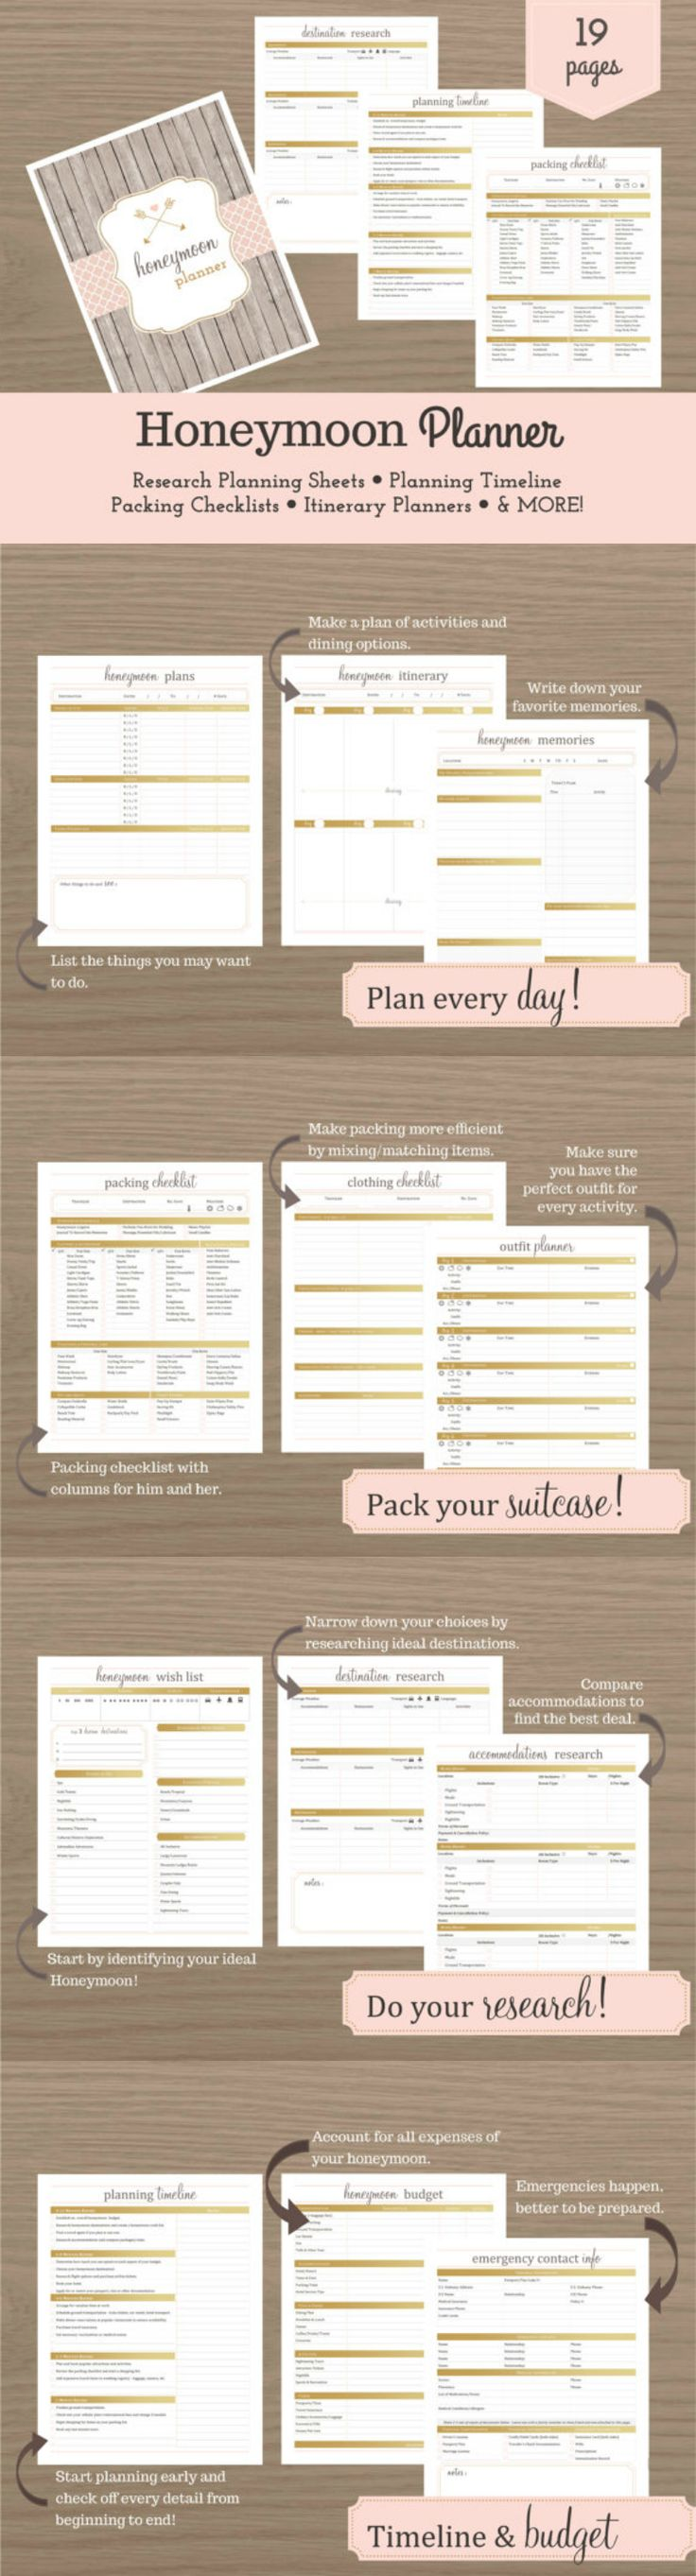 Congratulations on your engagement! Now it's time to start dreaming of your ideal honeymoon. Just like planning your wedding, planning a successful honeymoon requires preparation and organization. The Honeymoon Planner is the perfect tool to help you achieve a honeymoon that is as romantic and perfect as you imagine it! So after the big day has come and gone, you'll be on your way to honeymoon bliss! #honeymoon #travel #wedding #planner #printable #ad